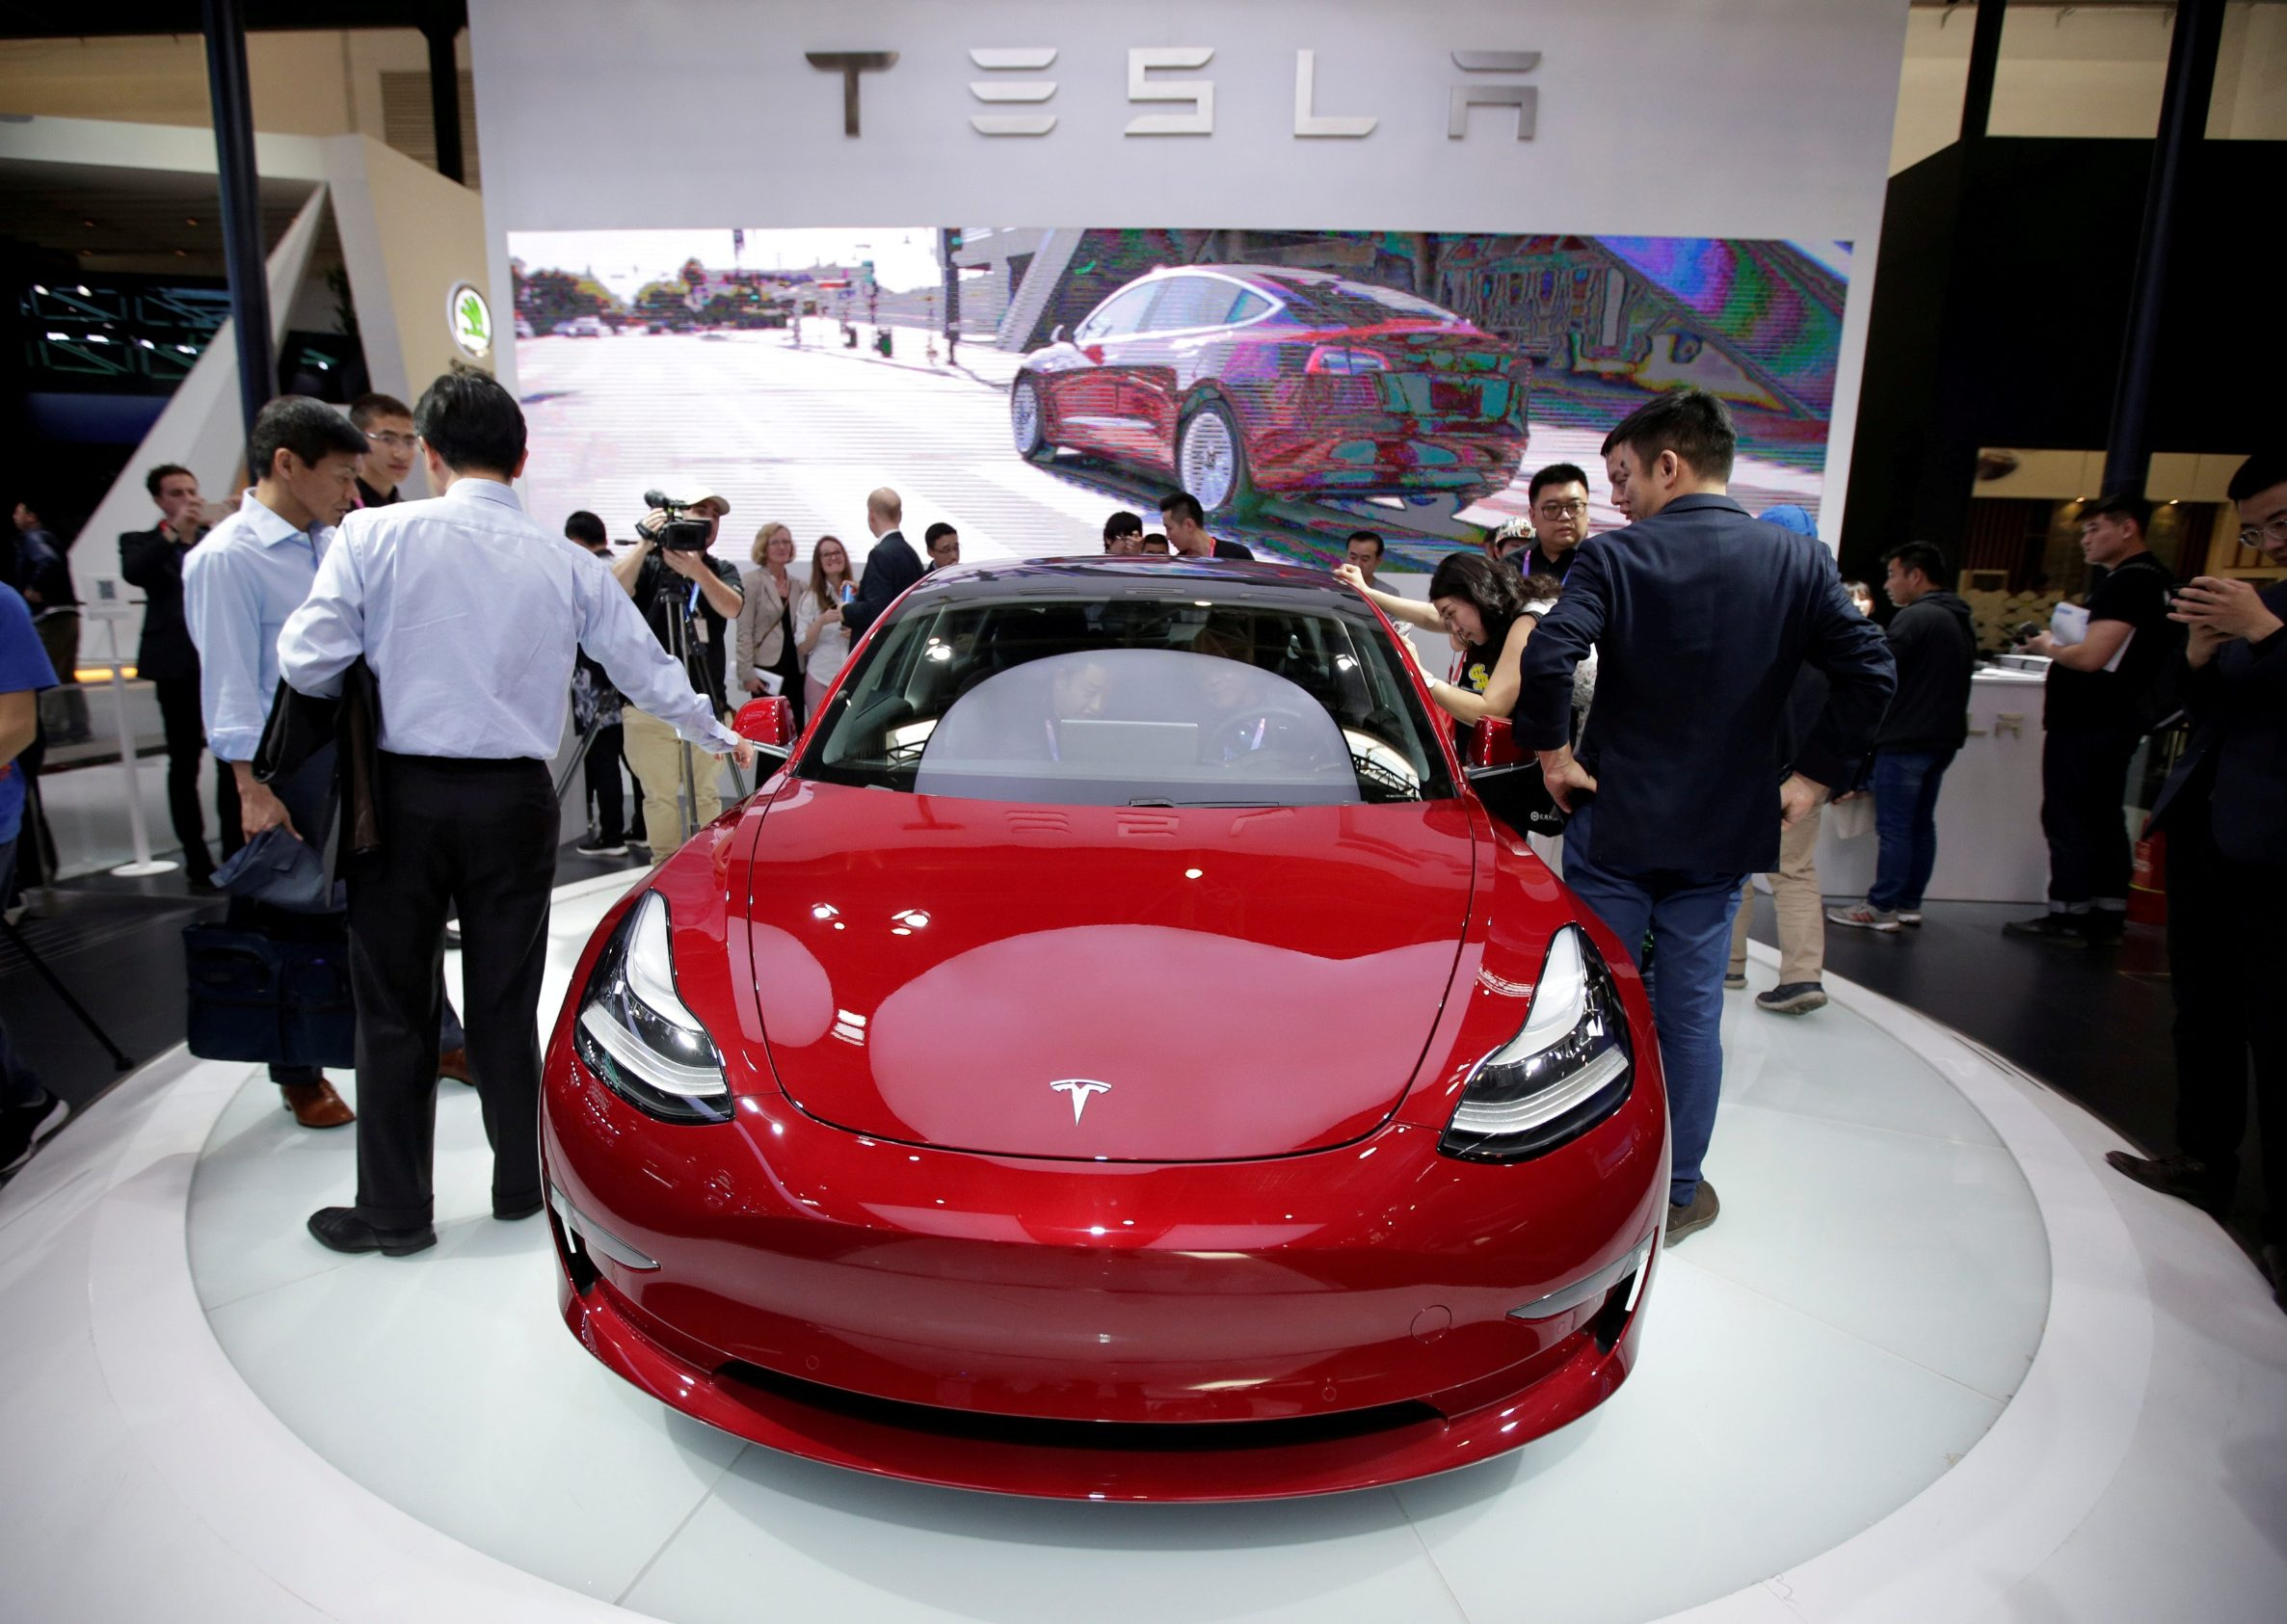 FILE PHOTO: A Tesla Model 3 car is displayed during a media preview at the Auto China 2018 motor show in Beijing, China April 25, 2018. REUTERS/Jason Lee/File Photo